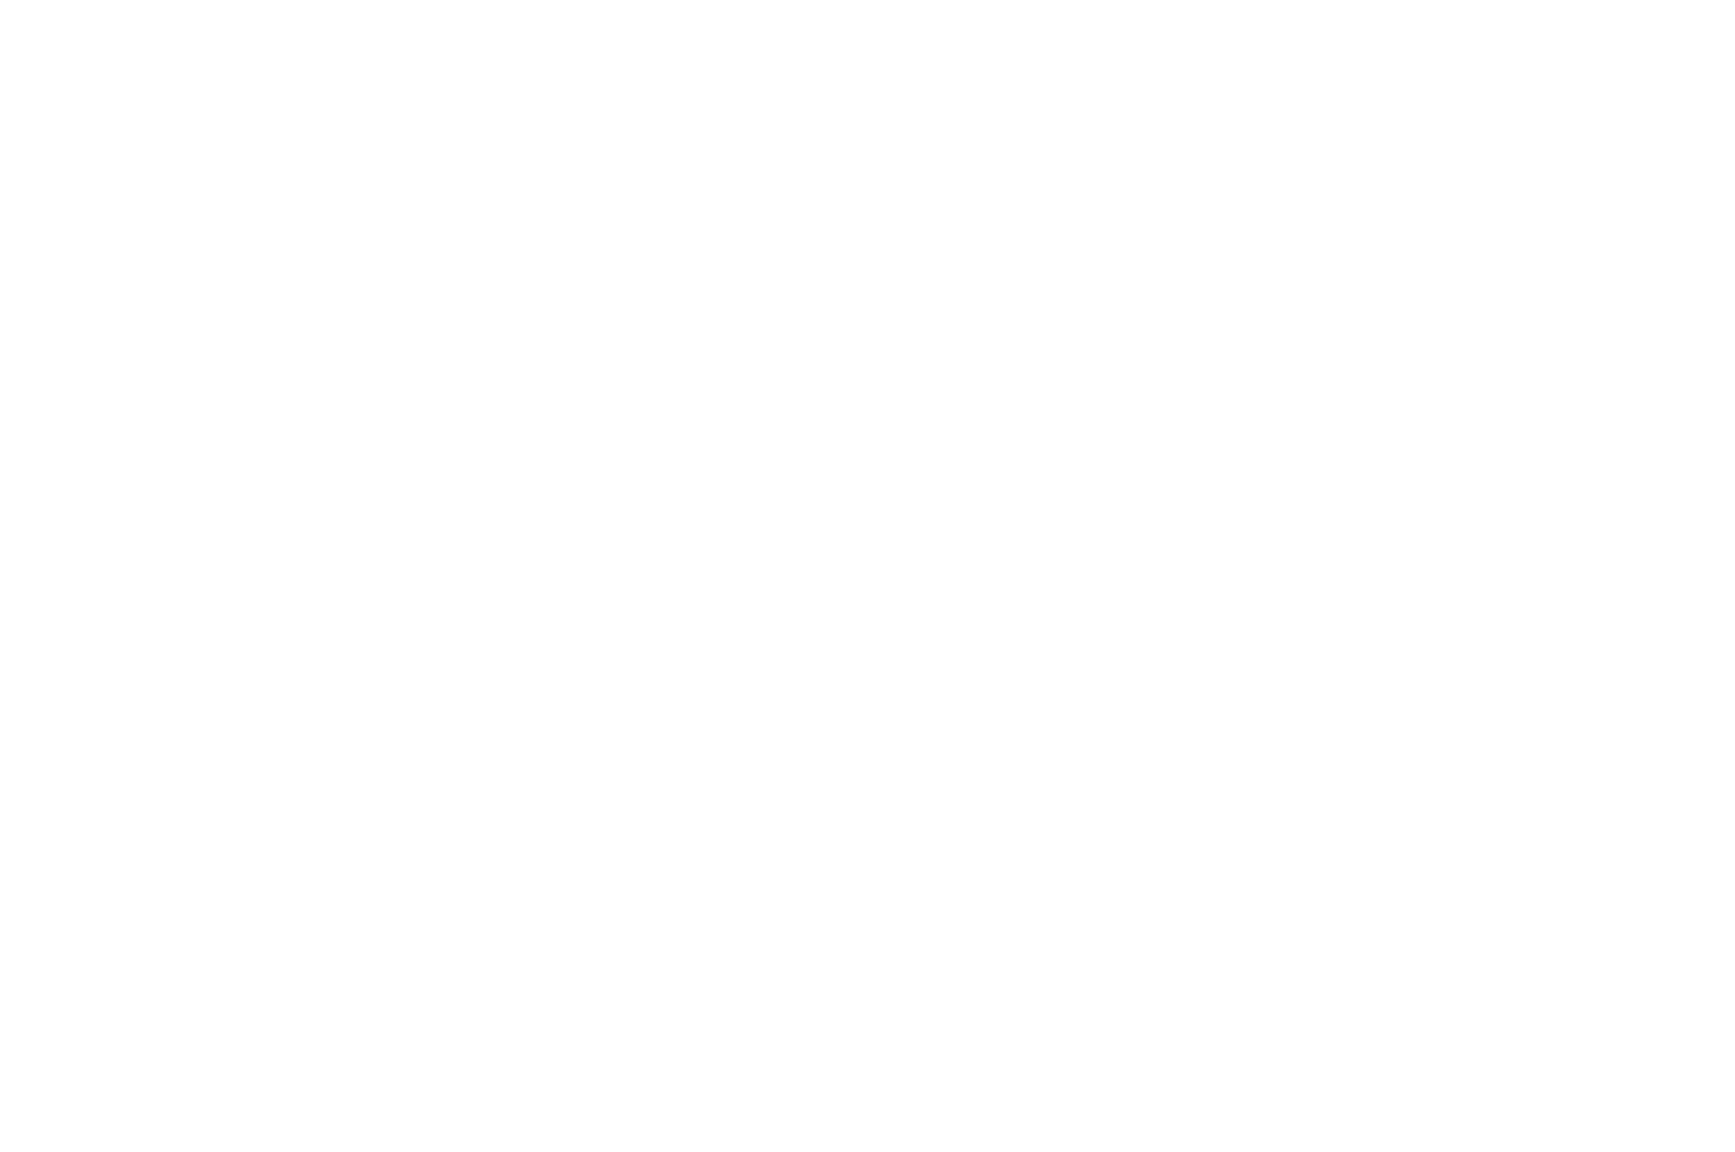 OFFICIAL SELECTION - Script and Storyboard Showcase - 2020